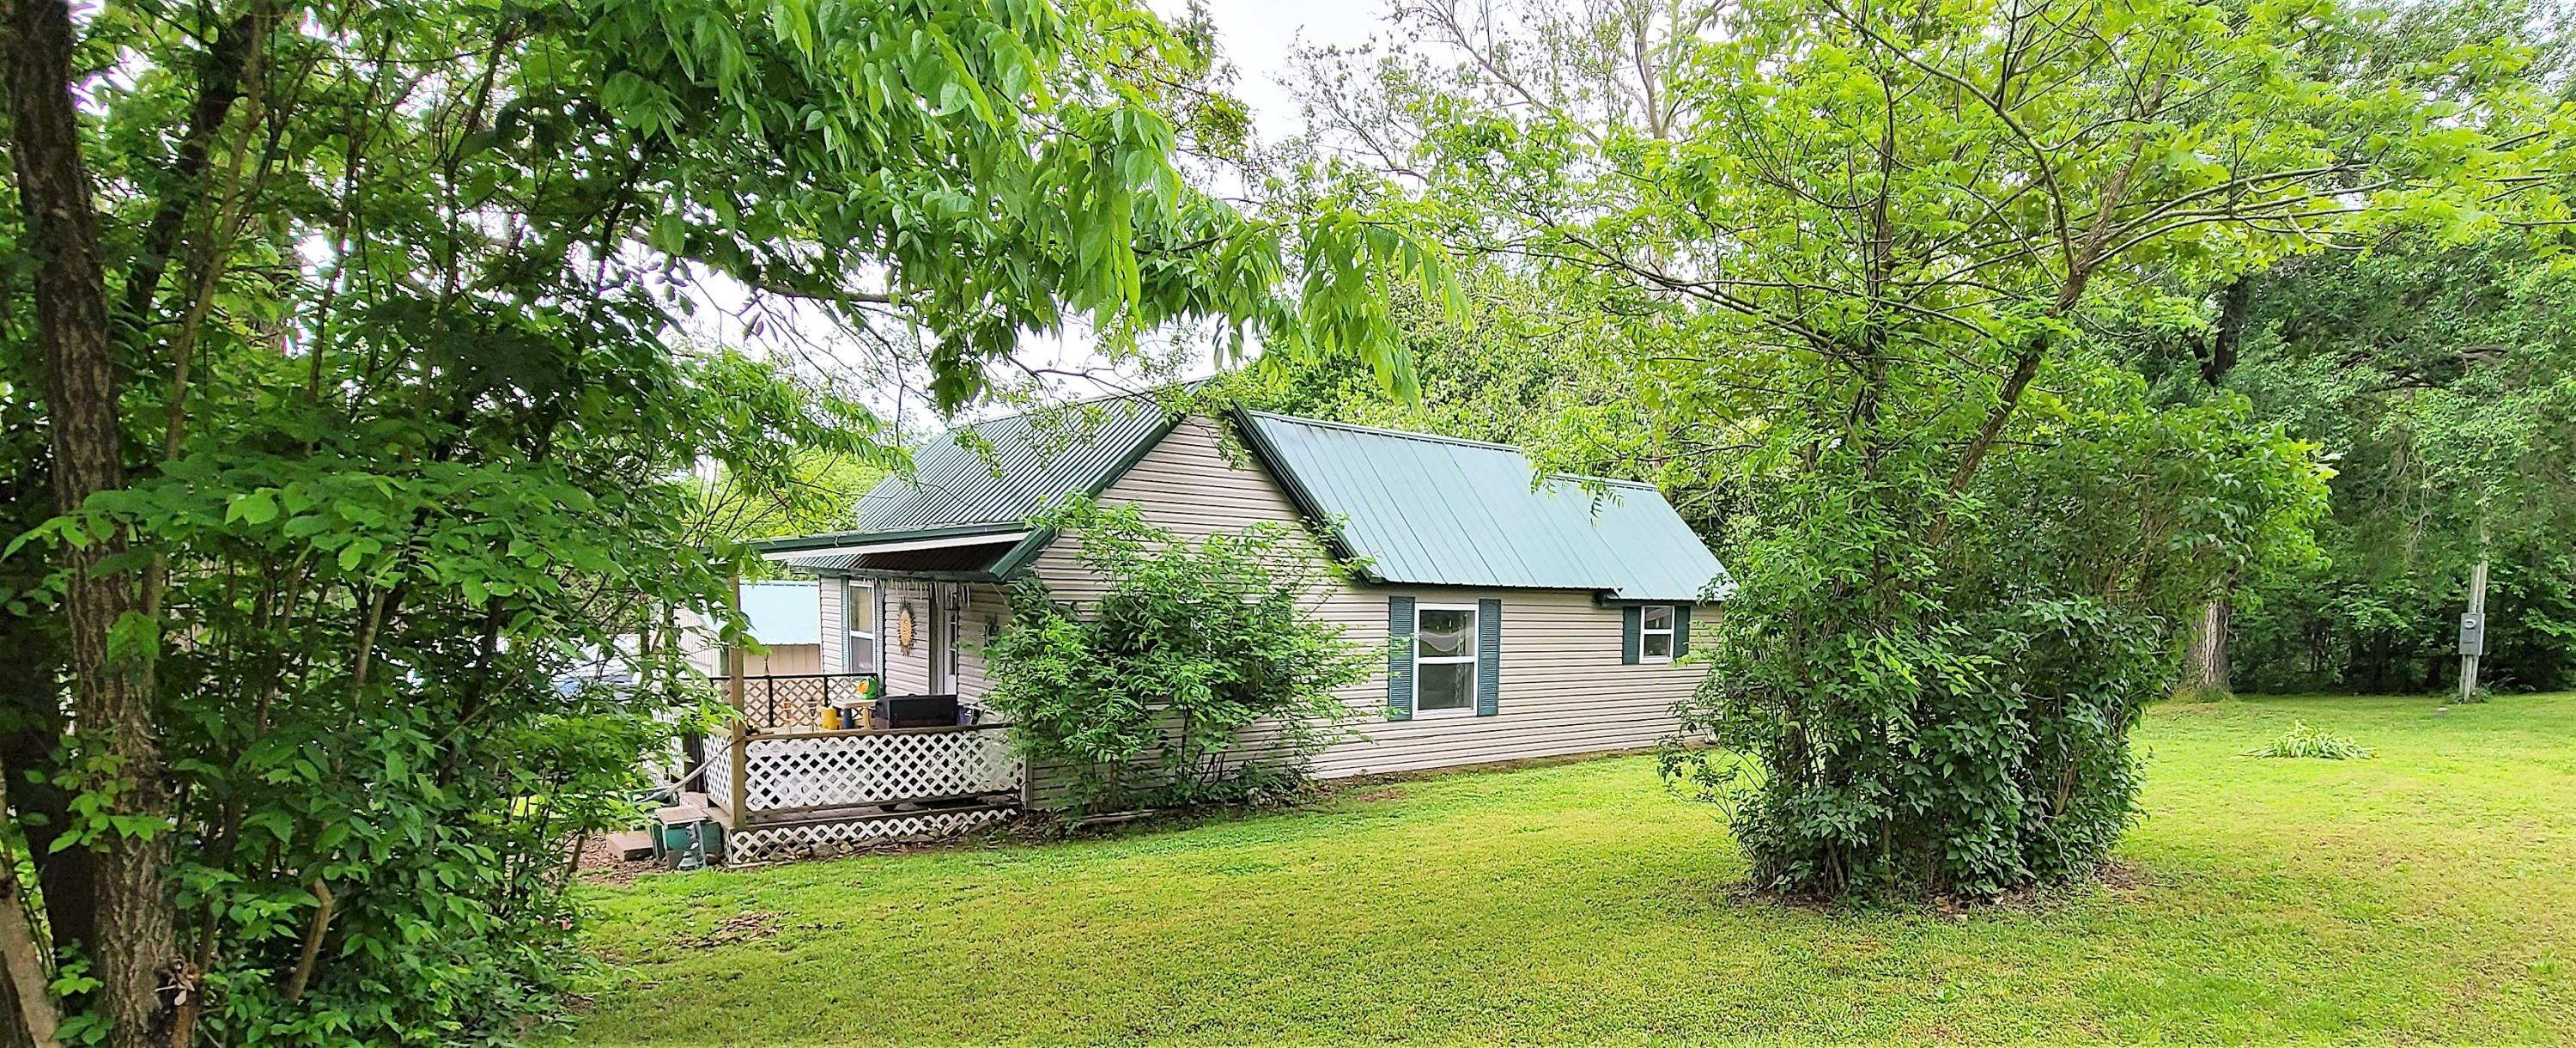 101 Tiff City Mail Street Anderson, MO 64831